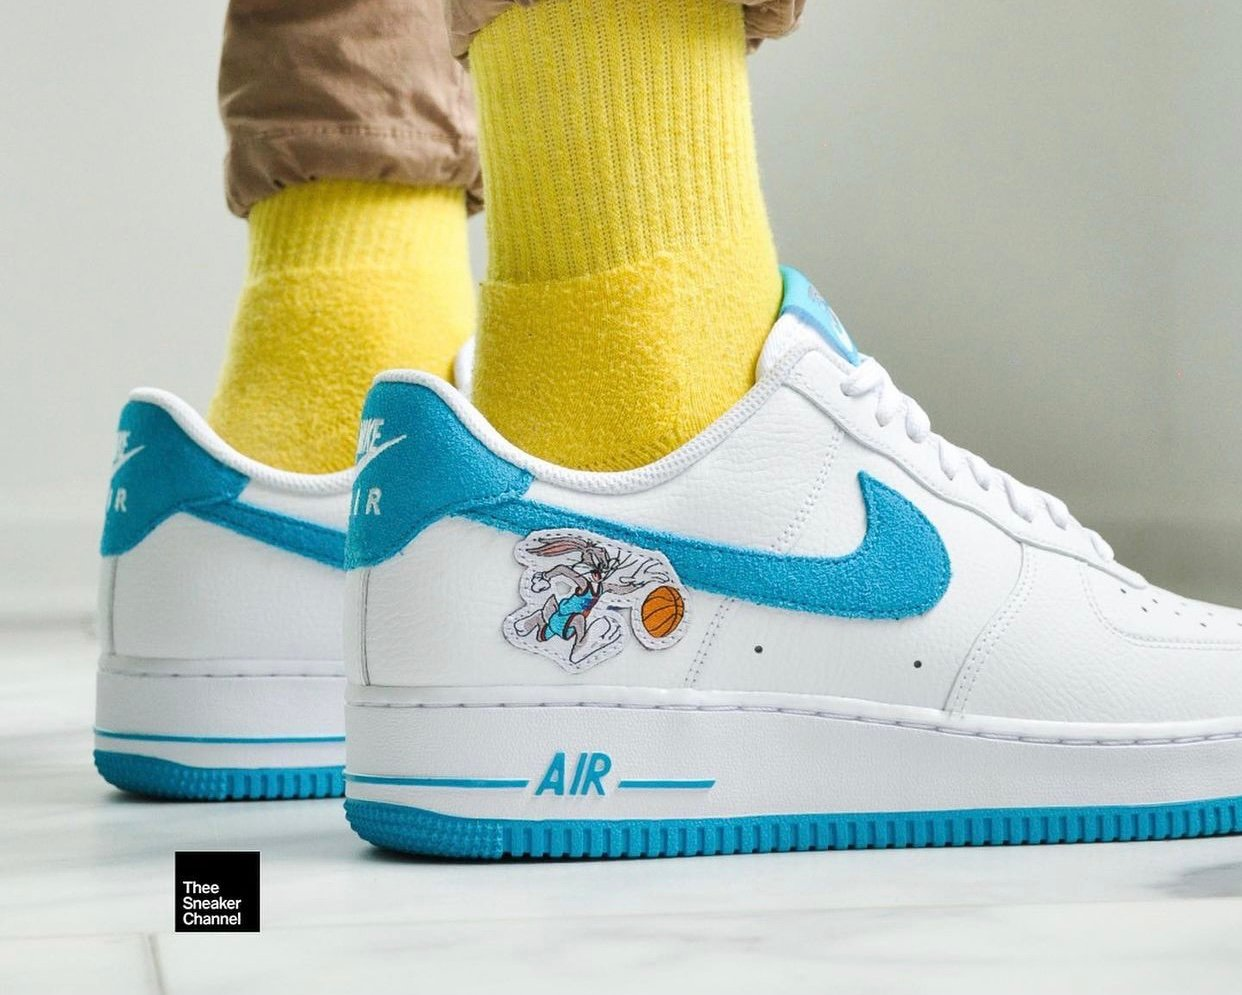 Space Jam Nike Air Force 1 Low Hare On-Feet